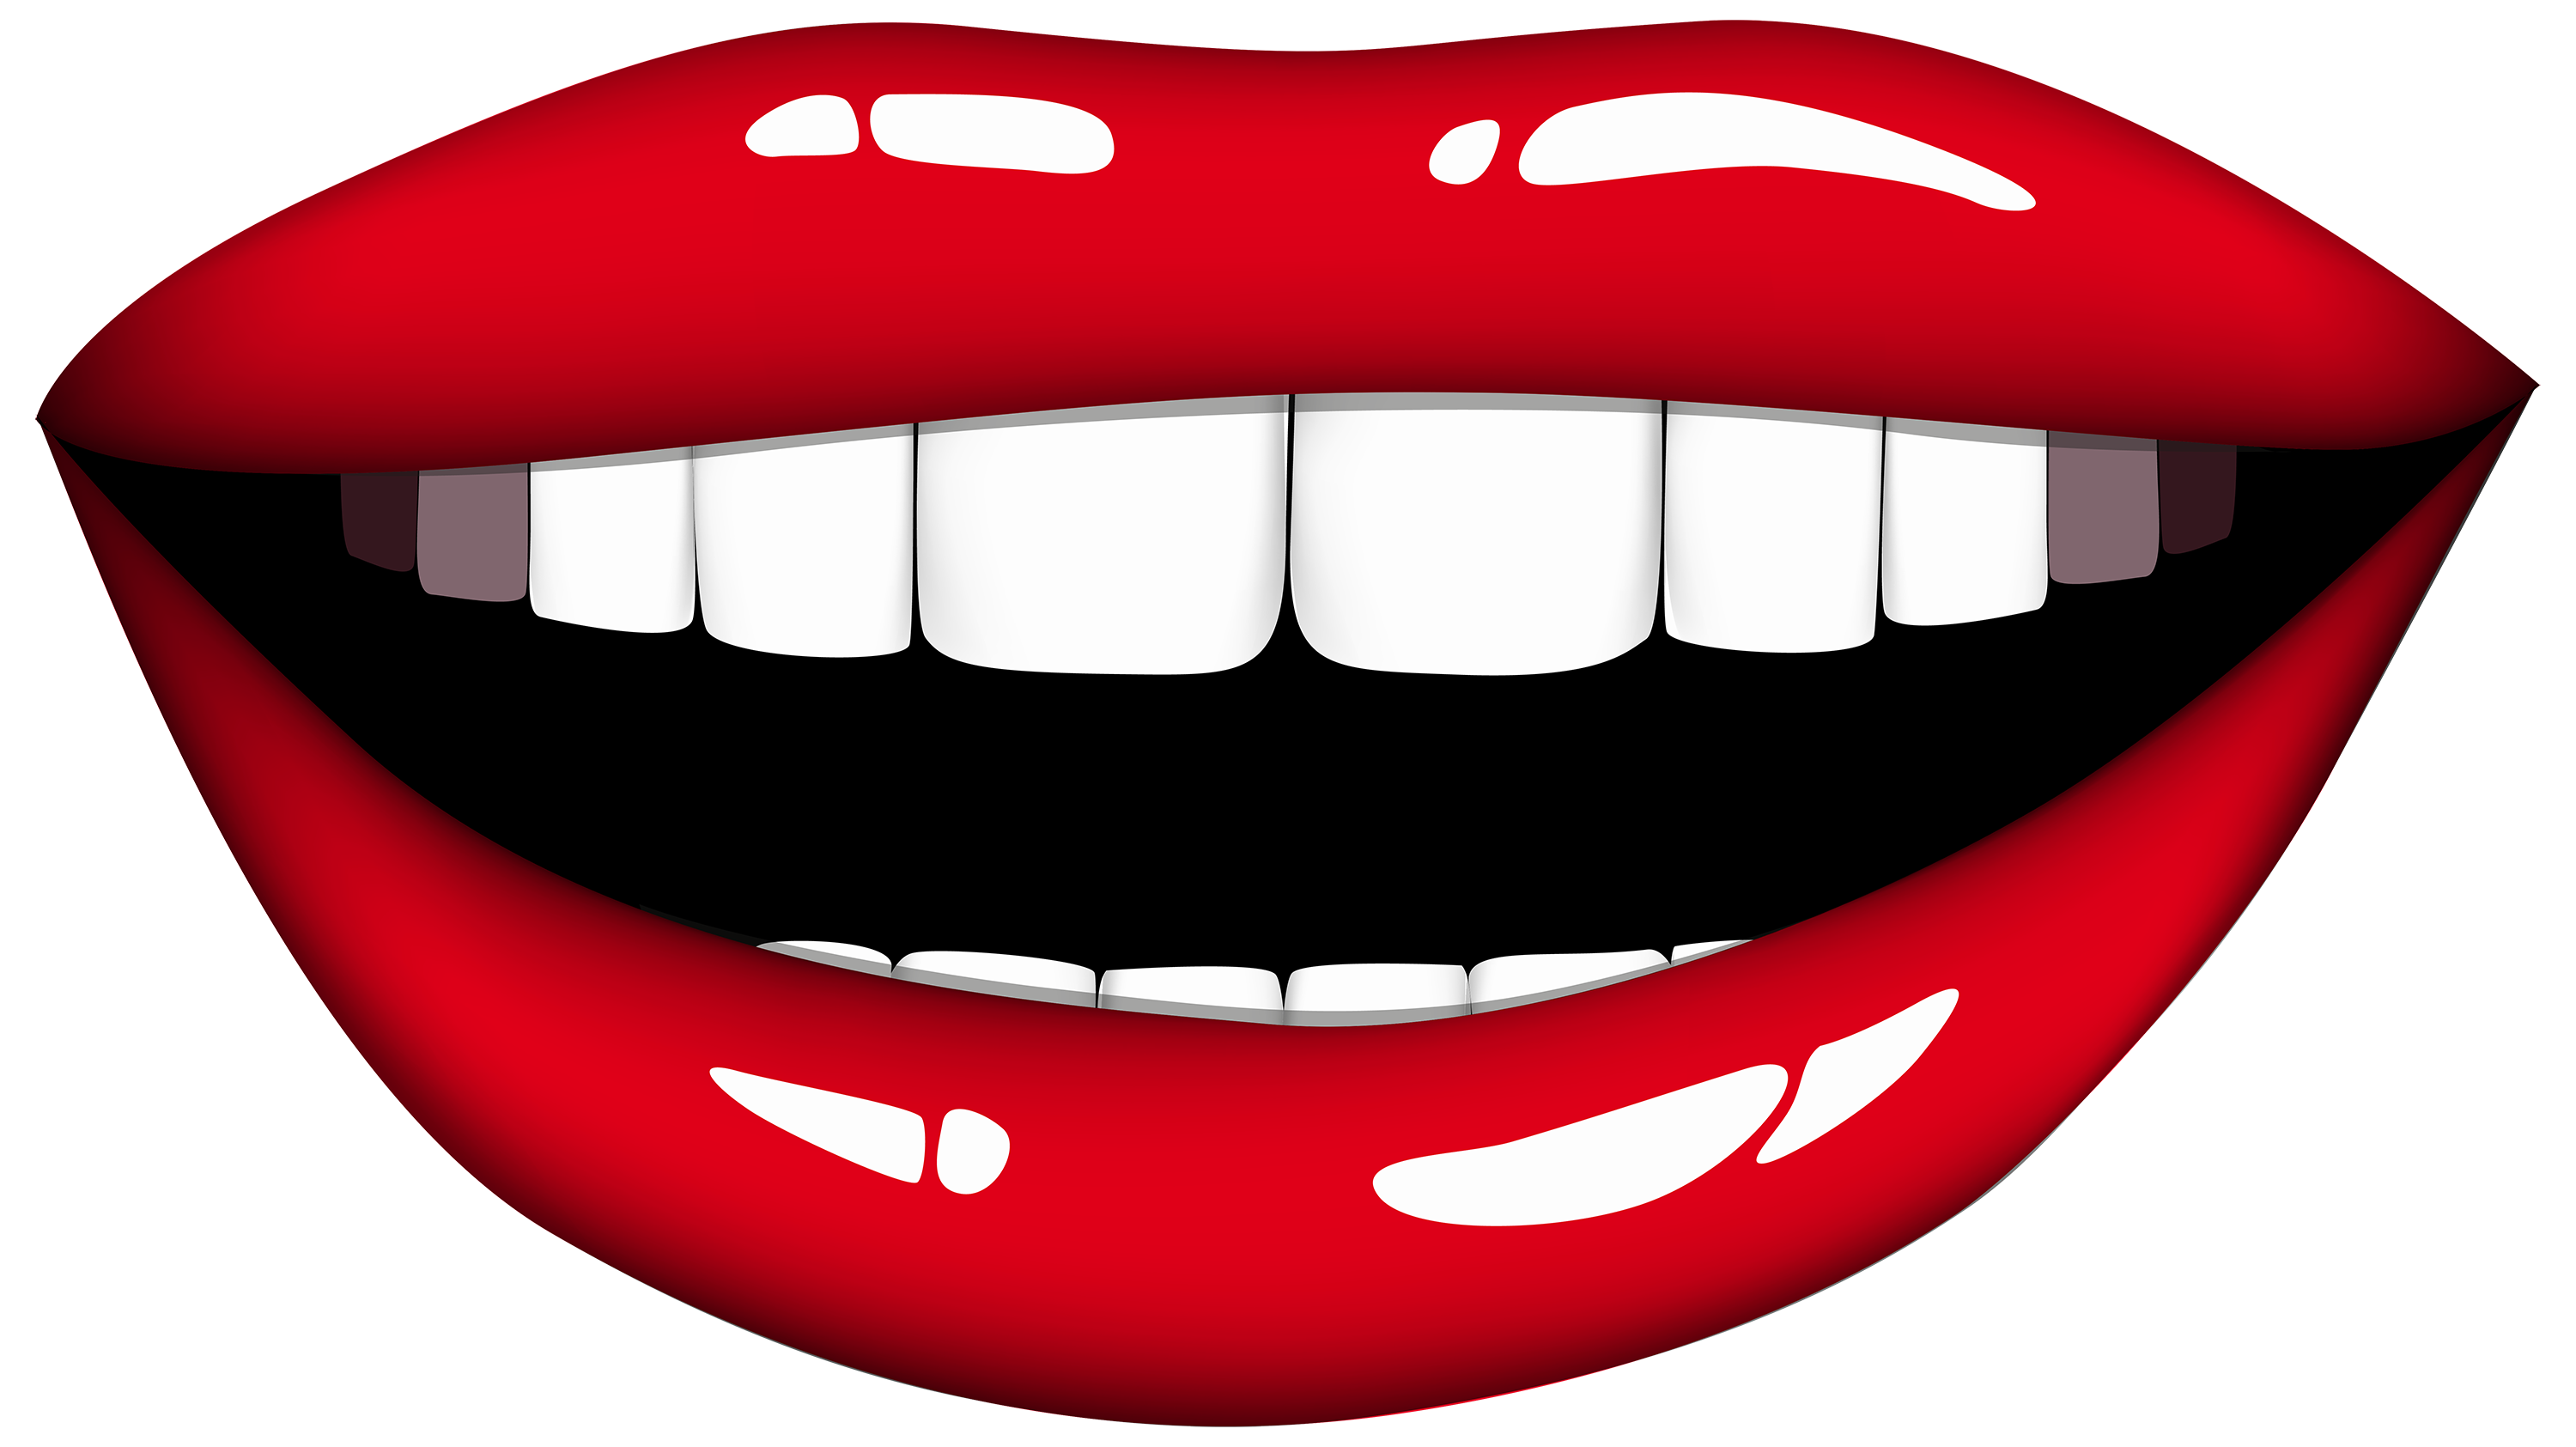 Fourth of clipart png. Smiling mouth best web